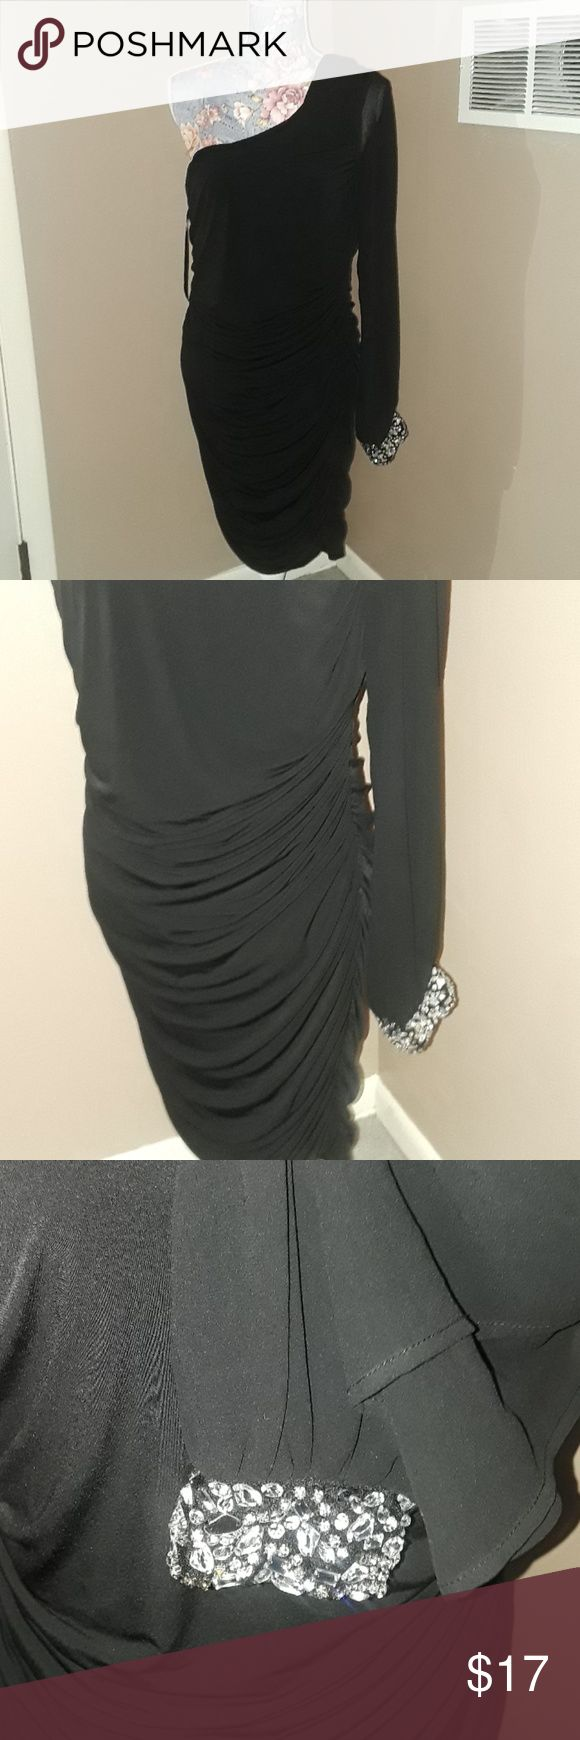 Deb Shops One Shoulder Black Accented Cuff Dress Deb brand  Size 1x Deb Dresses